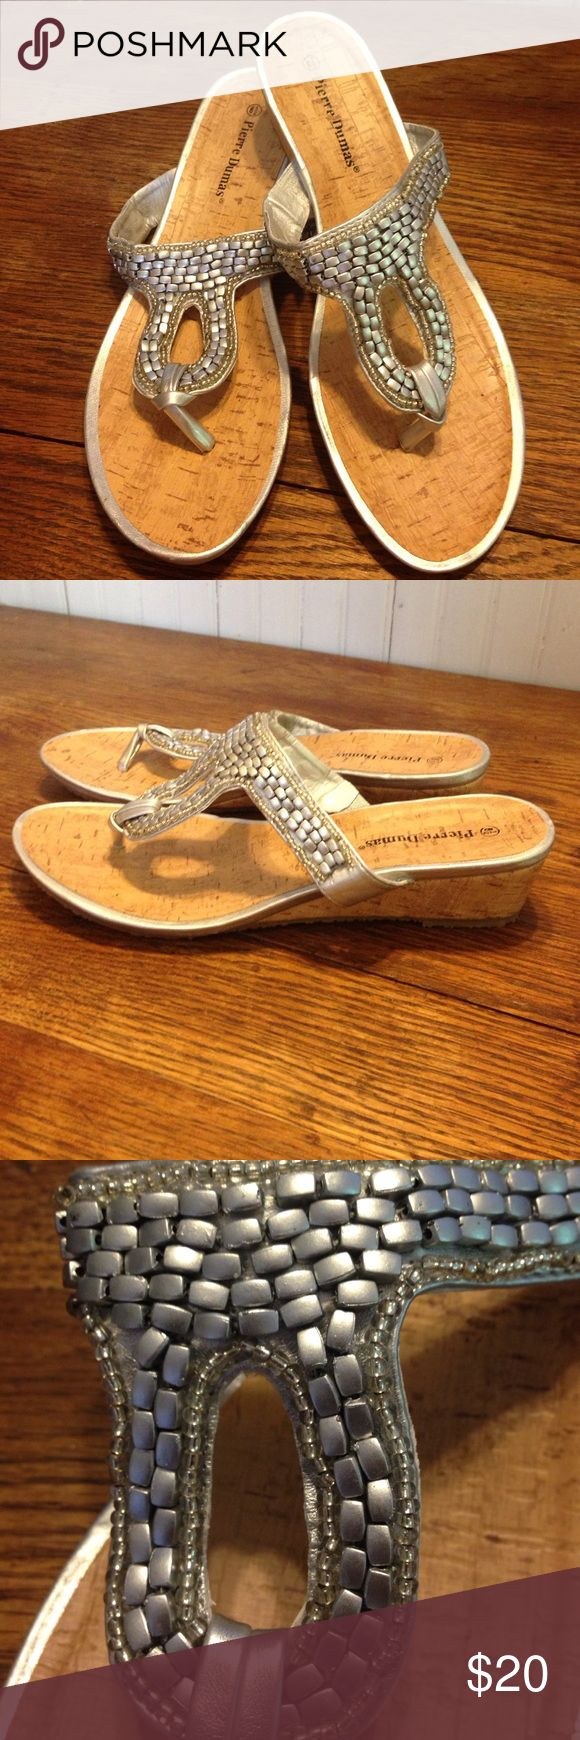 "Pierre Dumas metallic cork sandals 8.5 Pierre Dumas cork sandals w/ silver beading 8.5. Beautiful silver on a cork sandal. Very small( 1.5"") wedge heel. These are in excellent condition Shoes Sandals"